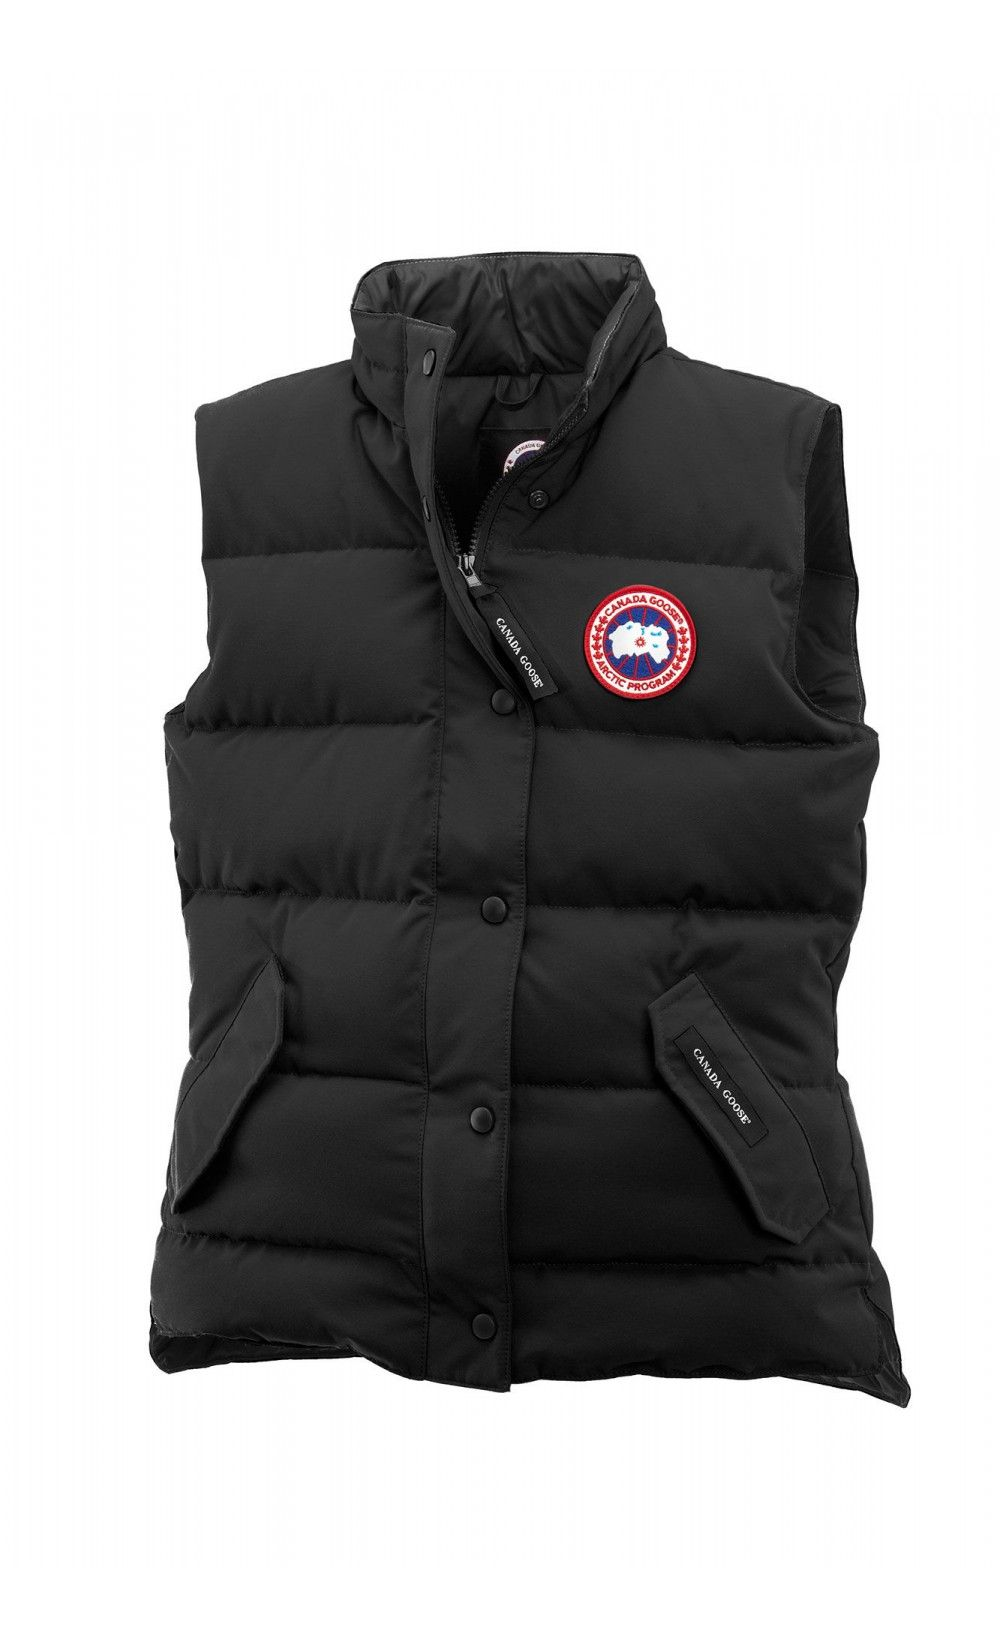 canadagoose 99 on winter outfits pinterest fashion vest and rh pinterest com